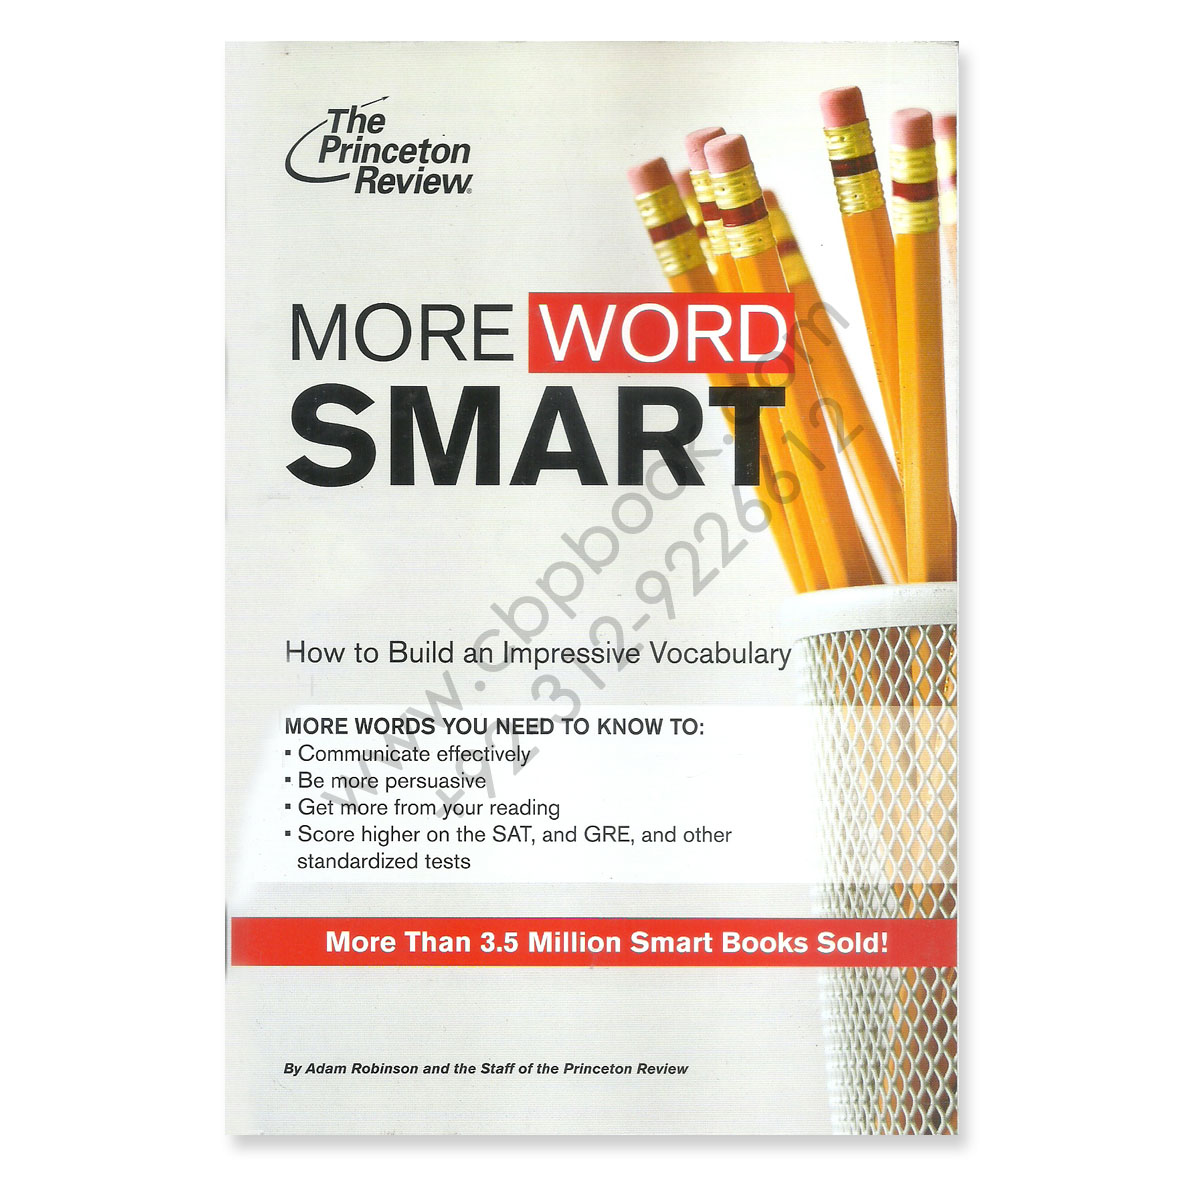 the princeton review more word smart by adam robinson